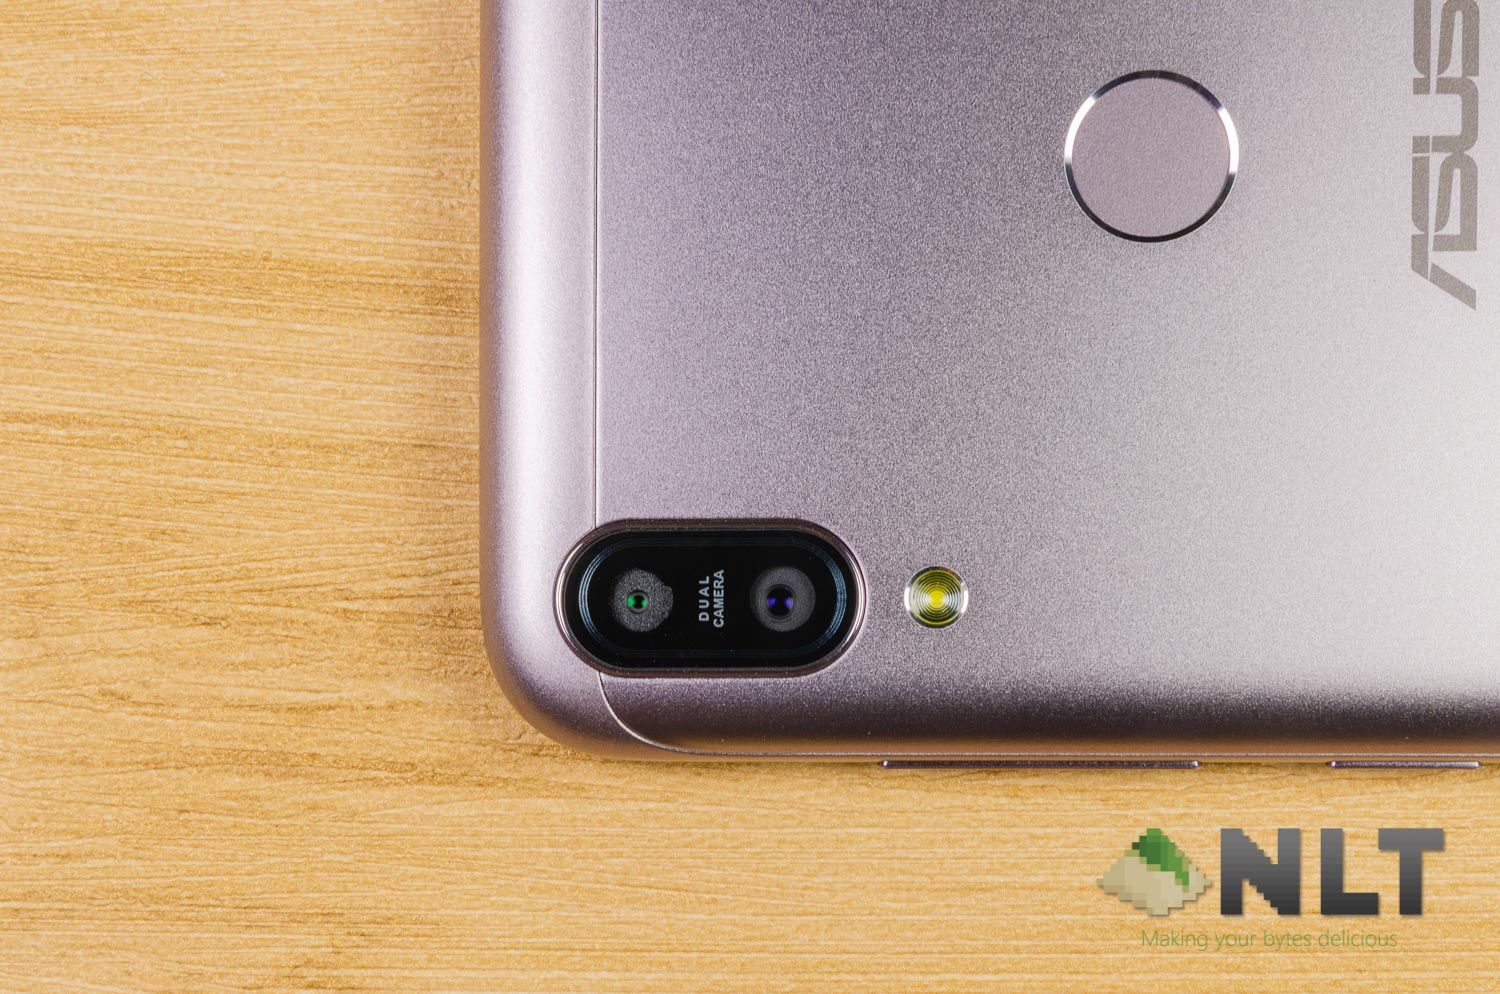 UPDATE] ASUS ZenFone Max Pro (M1)'s Camera Has Full Manual Mode